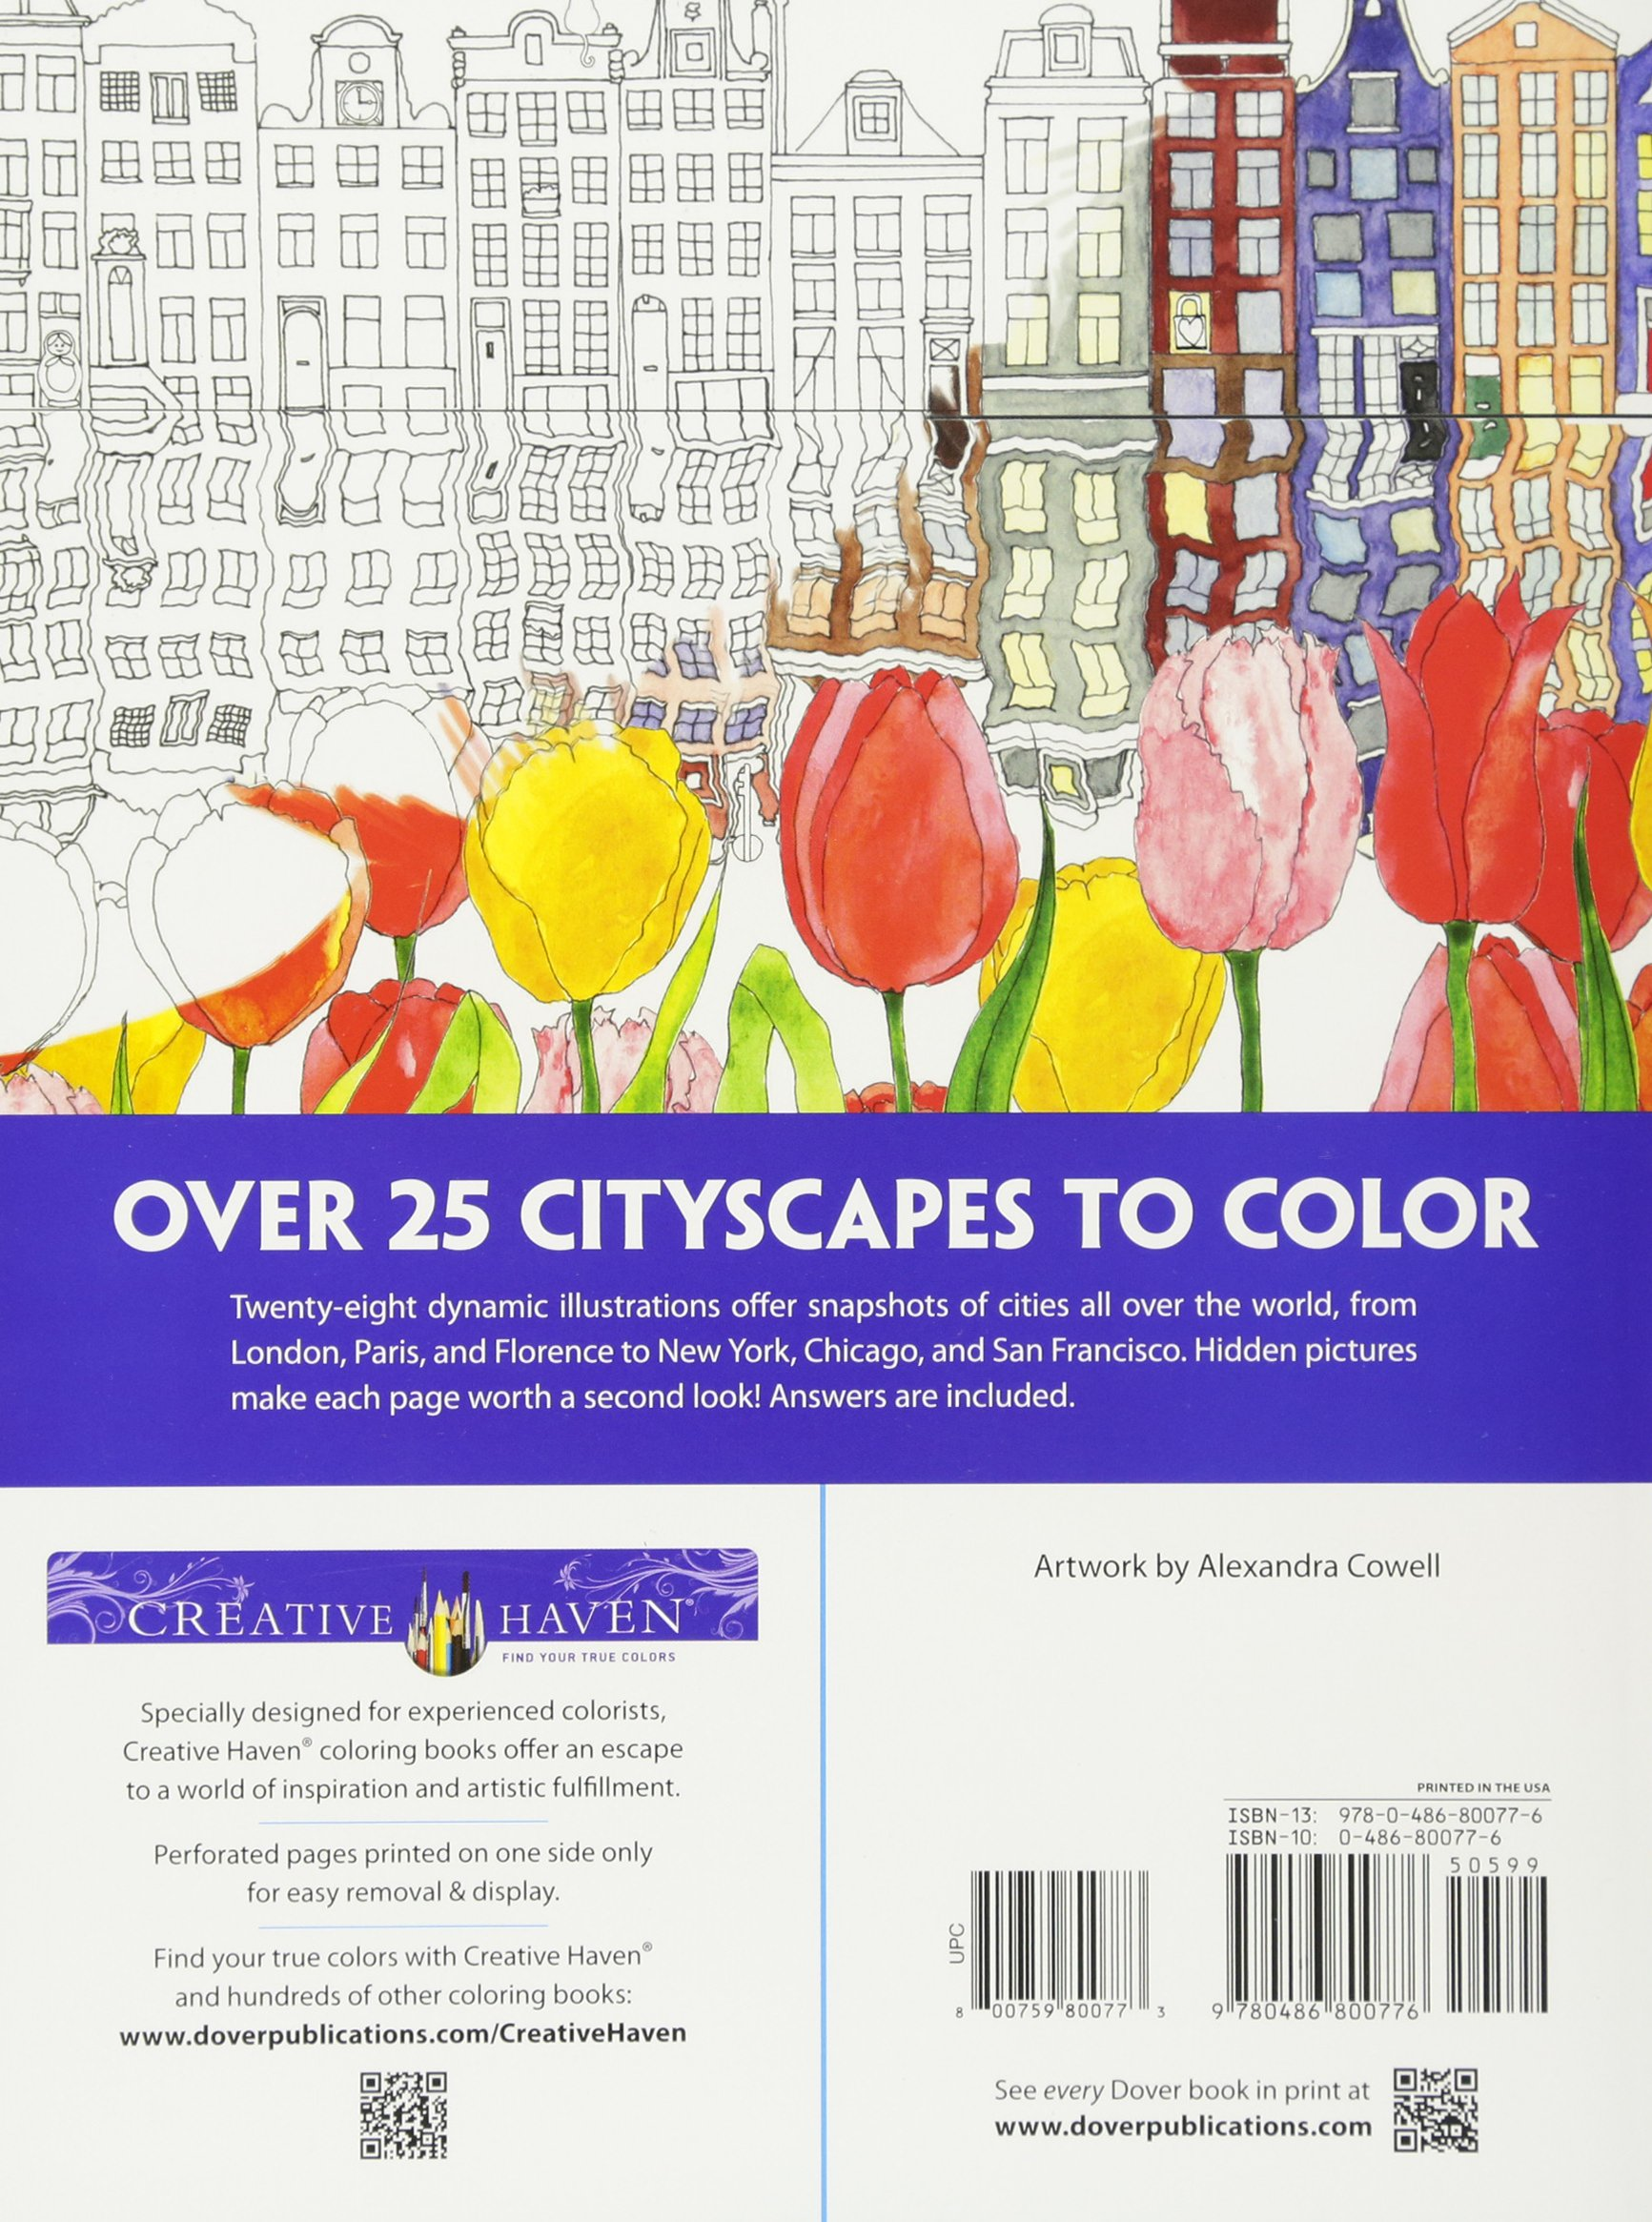 amazoncom creative haven cityscapes a coloring book with a hidden picture twist adult coloring 9780486800776 alexandra cowell books - True Colors Book